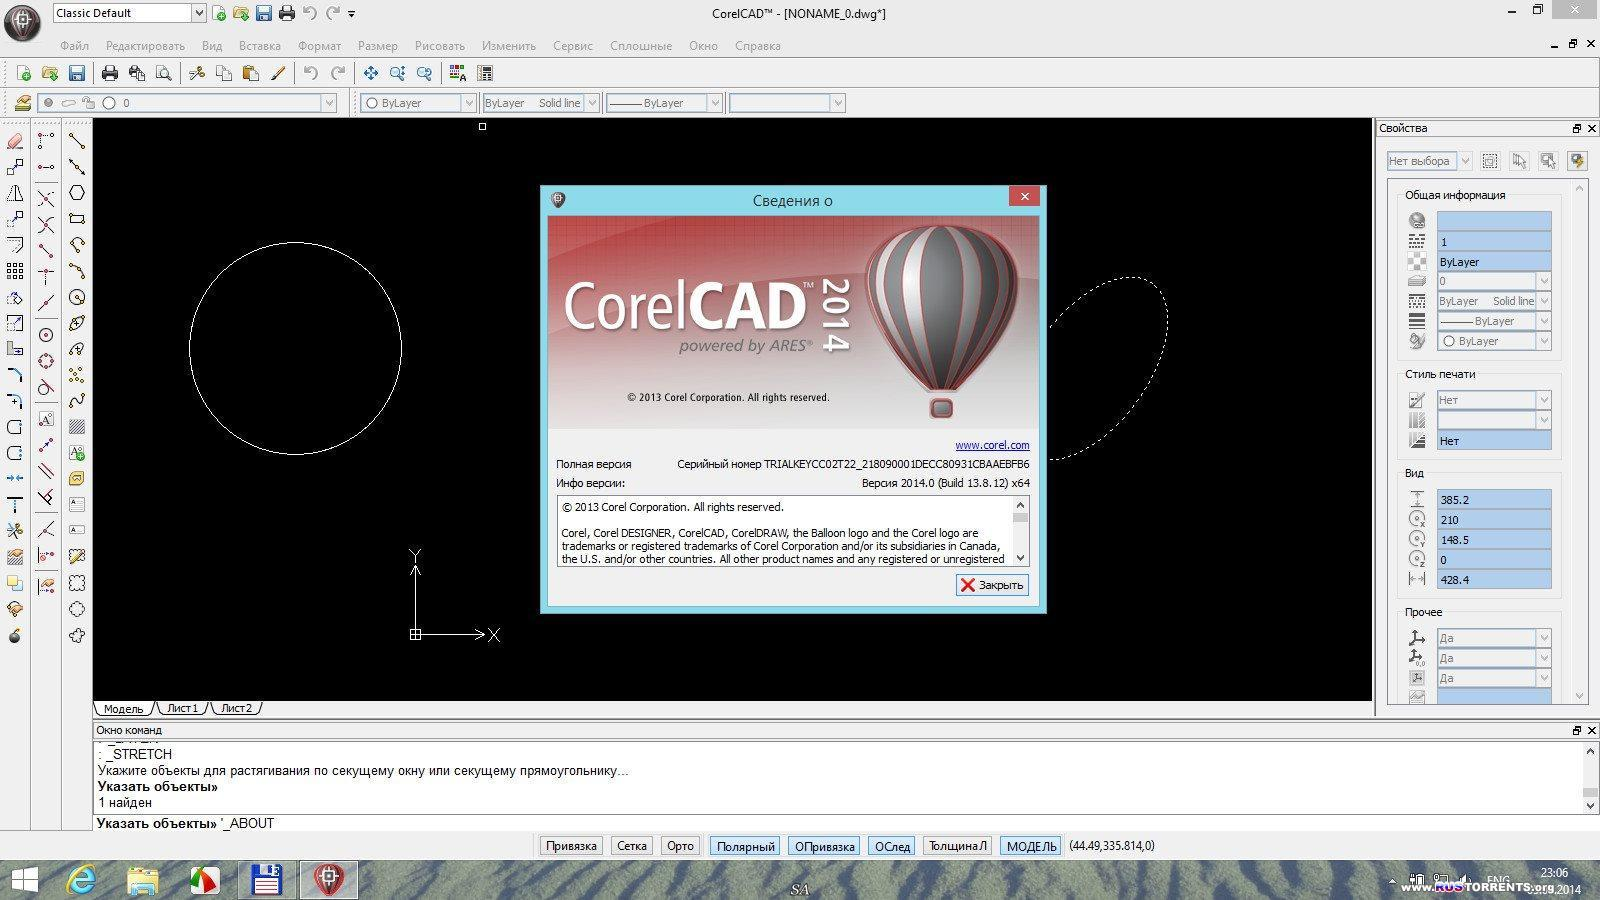 CorelCAD 2014.0 Build 13.8.12 x64 +  RePack by D!akov